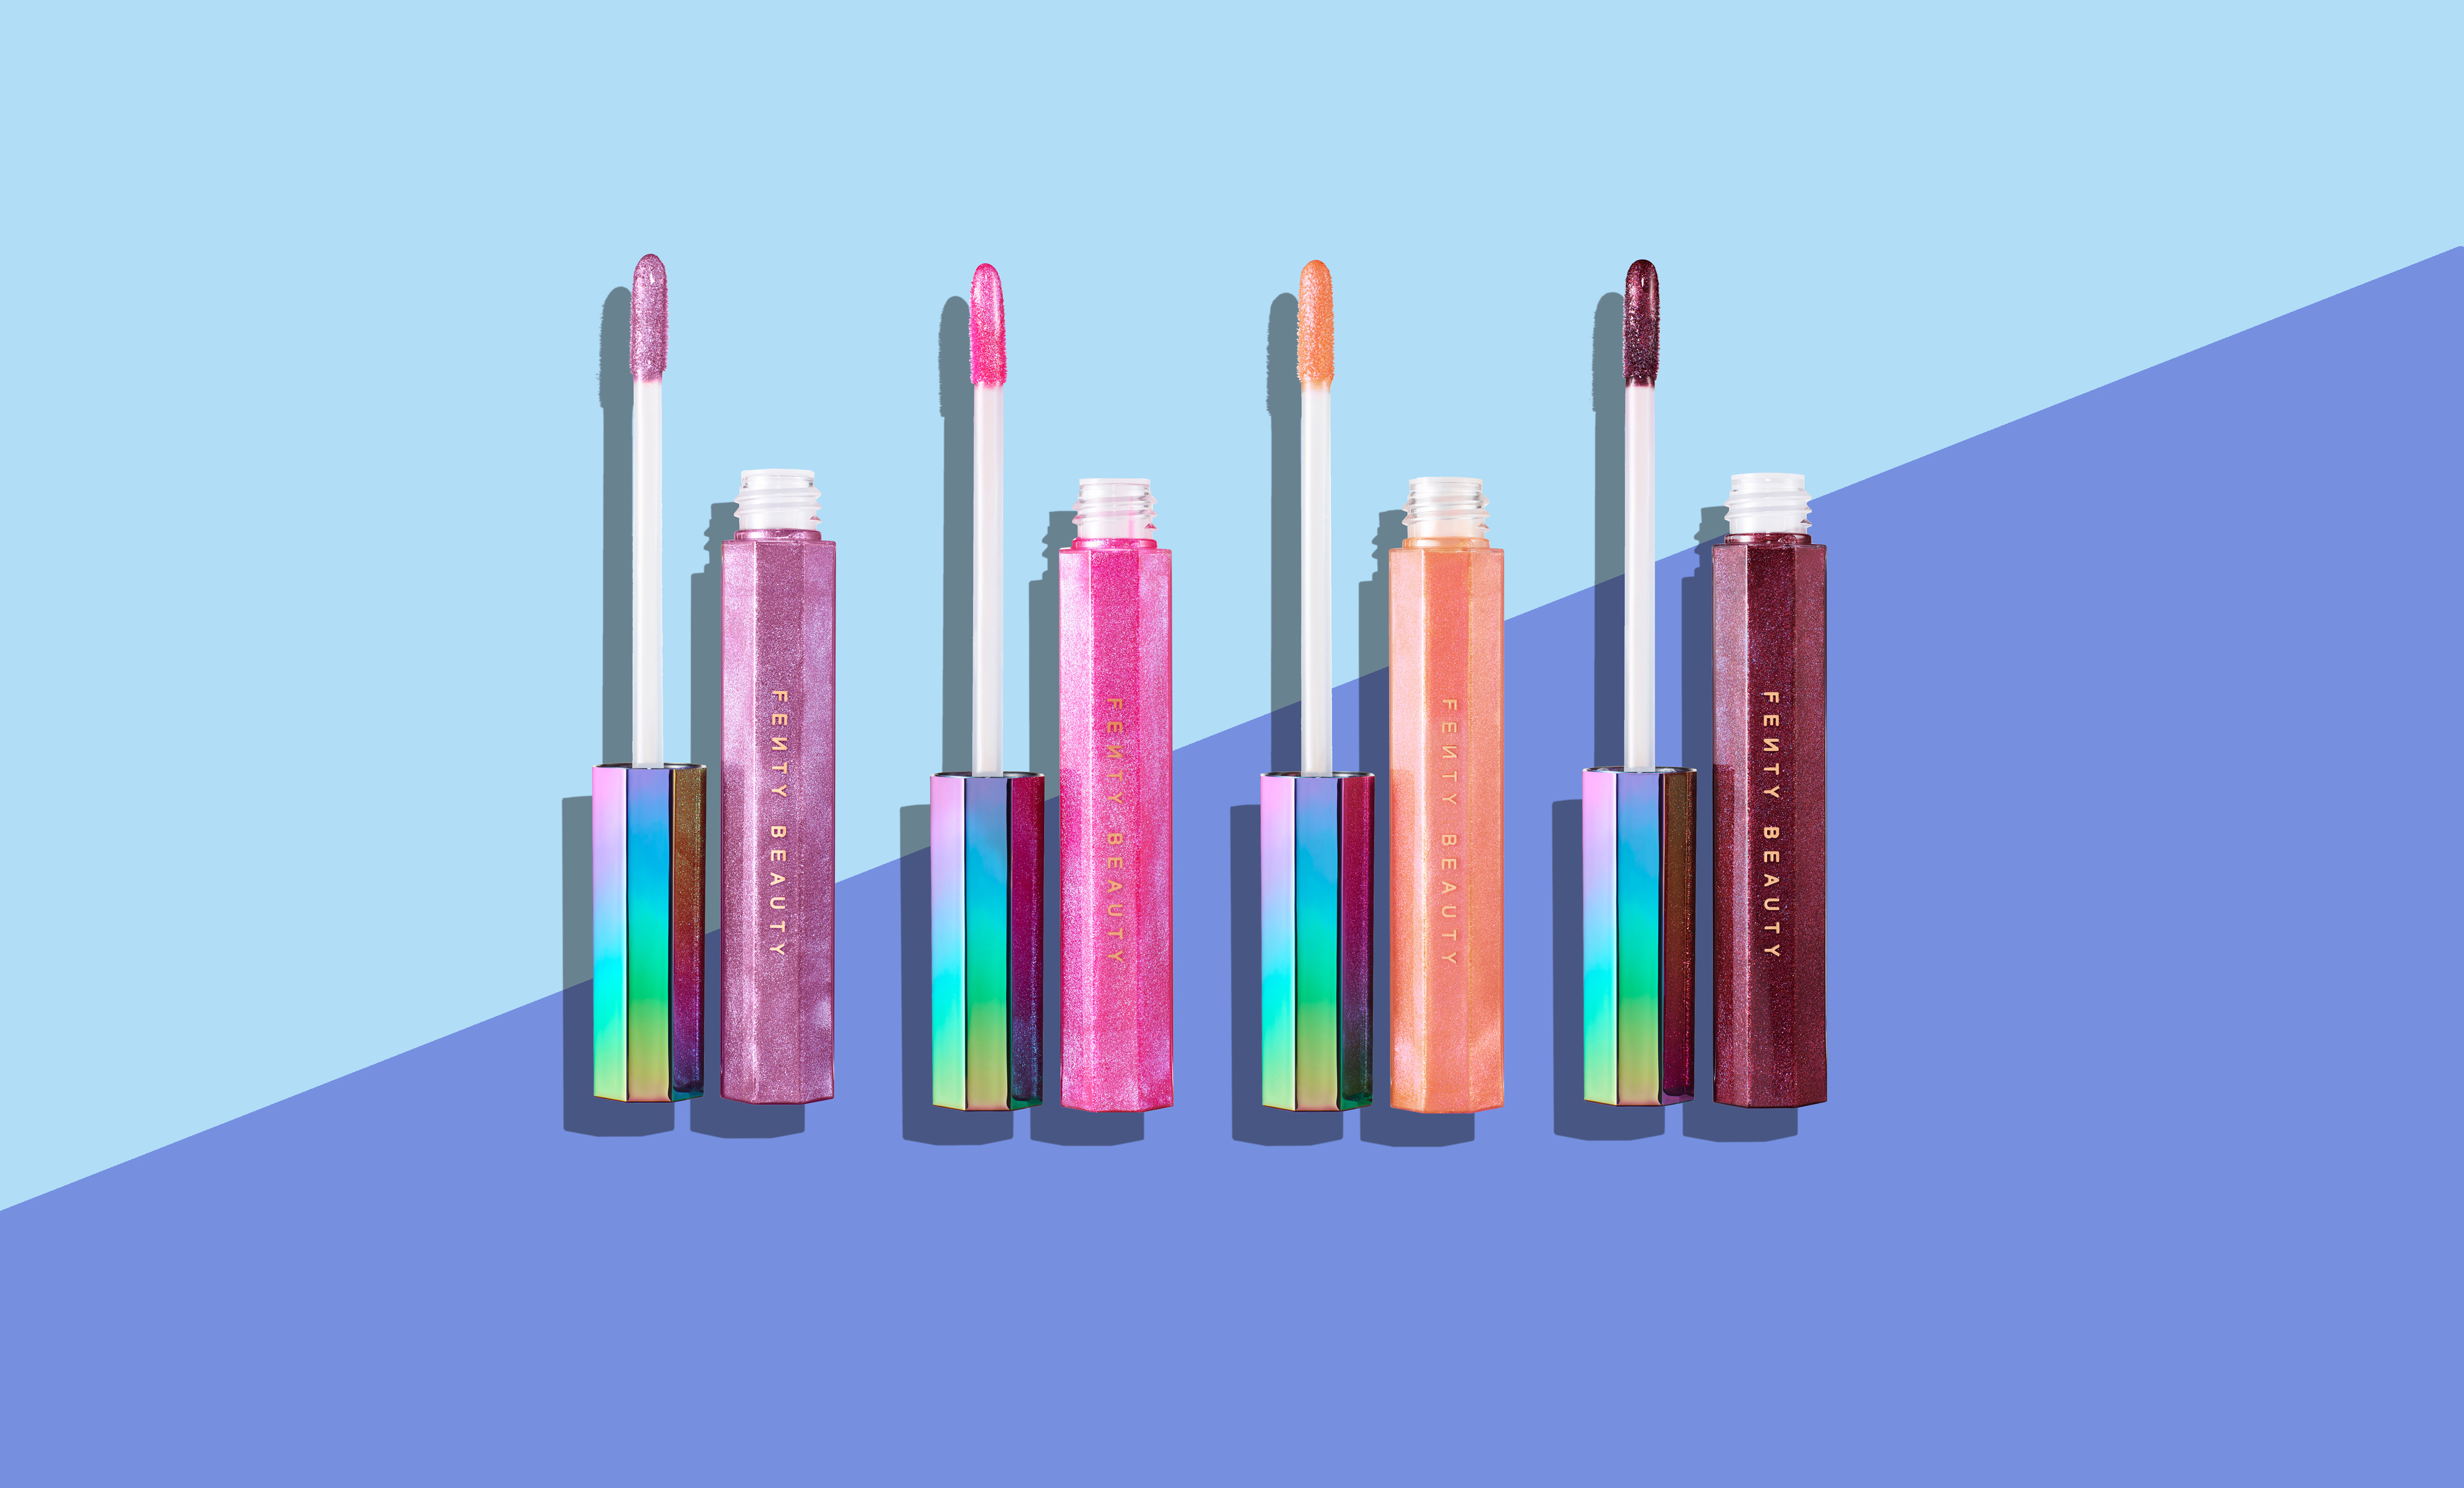 These Fenty Beauty Galaxy Collection Products Will Give You A